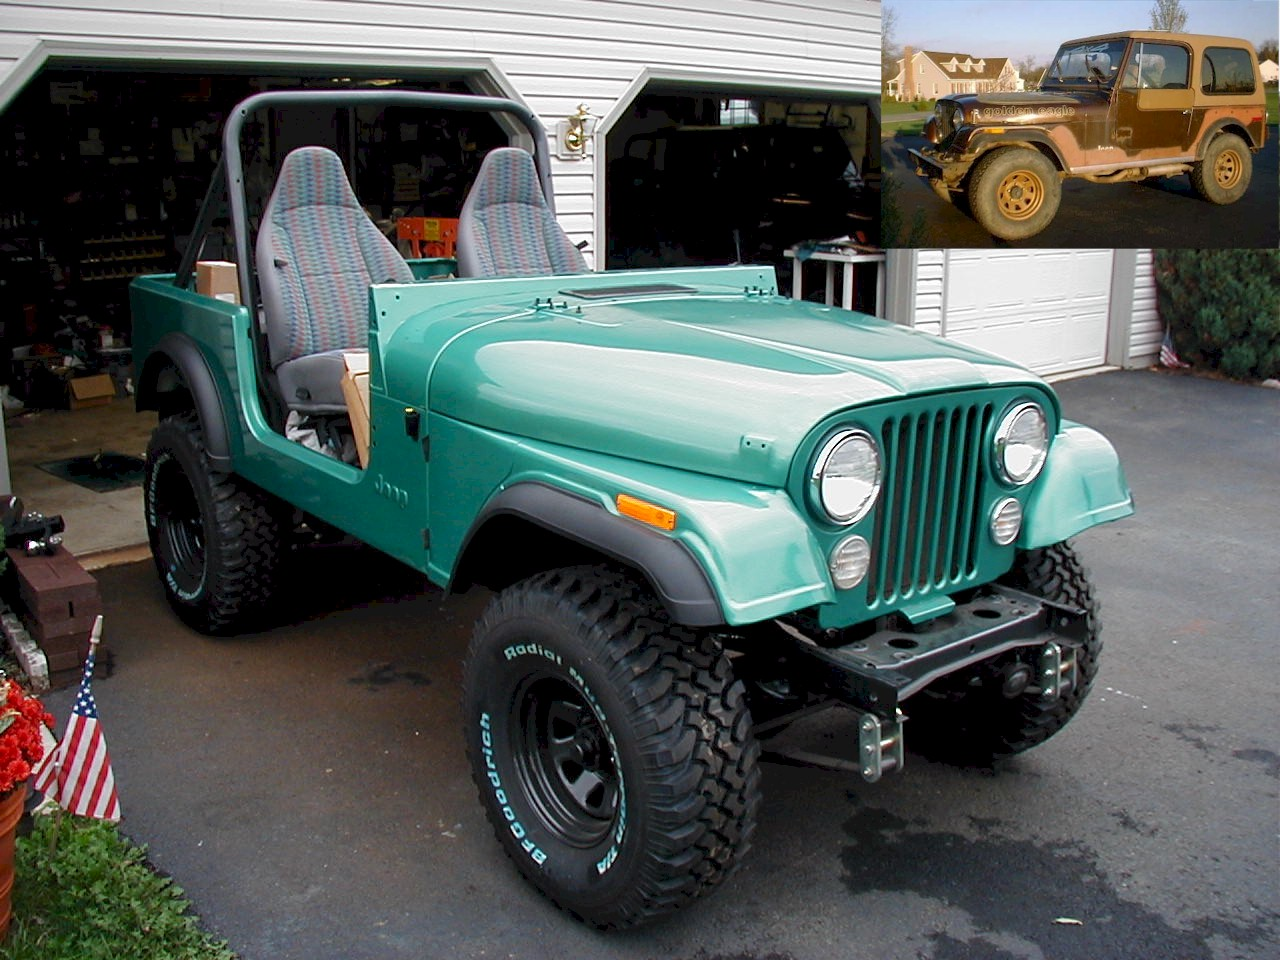 Maxresdefault as well Windshield Wiper Pinout For Quadratec For Jeep Cj Cj Cj   Cj Scrambler also Large besides C B likewise D Weber Dgev Flooding One Barrel Only Fuel Filter Fpr Hoses Carb. on 1976 jeep cj5 wiring diagram